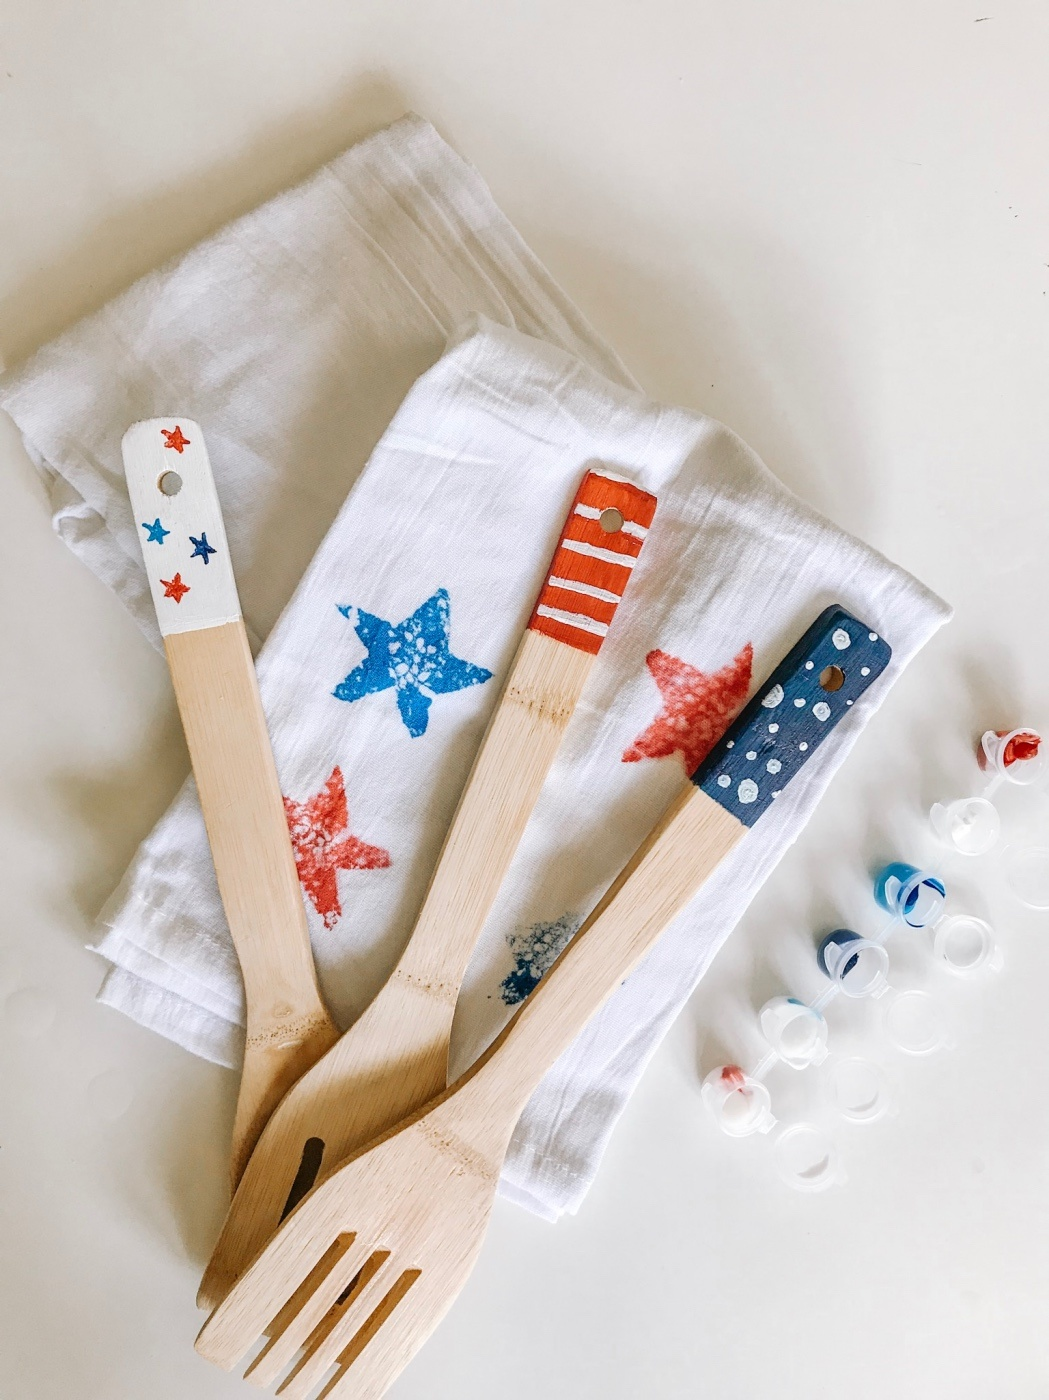 finished hand painted wooden spoons for 4th of july